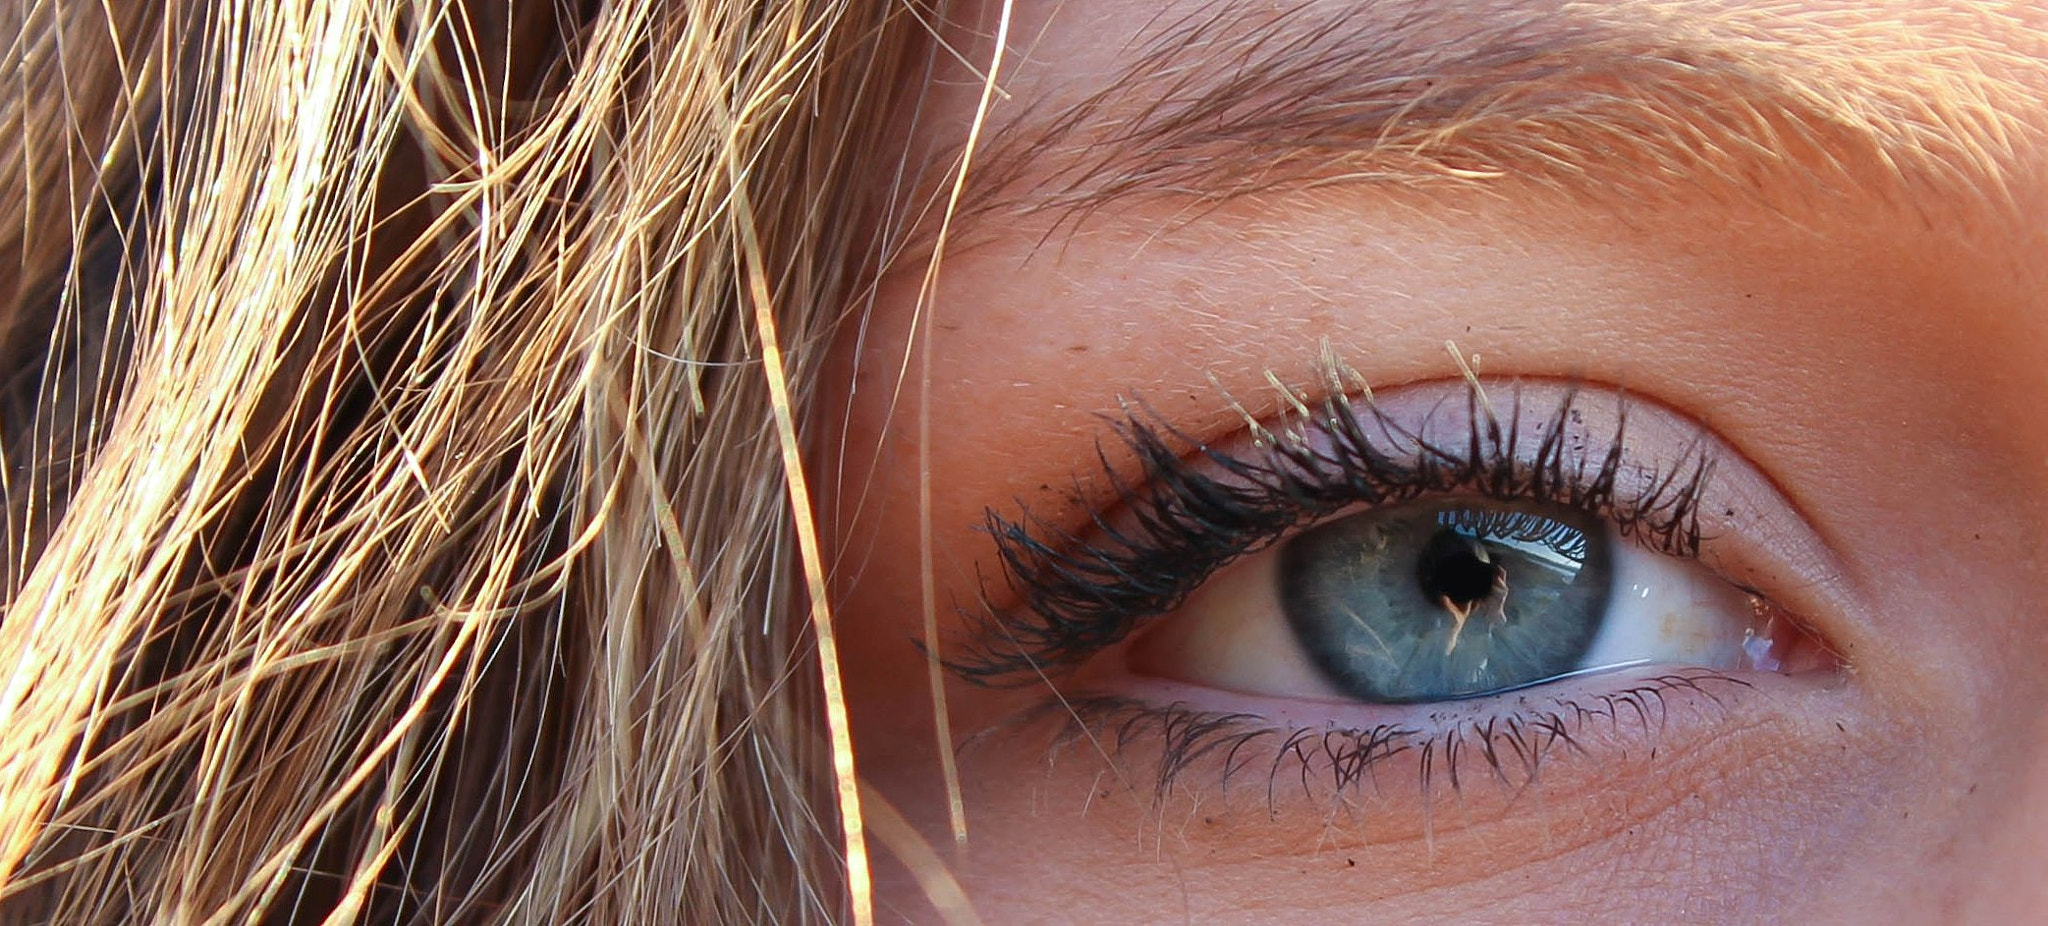 Photograph EYE See you  by Jenna Payn on 500px